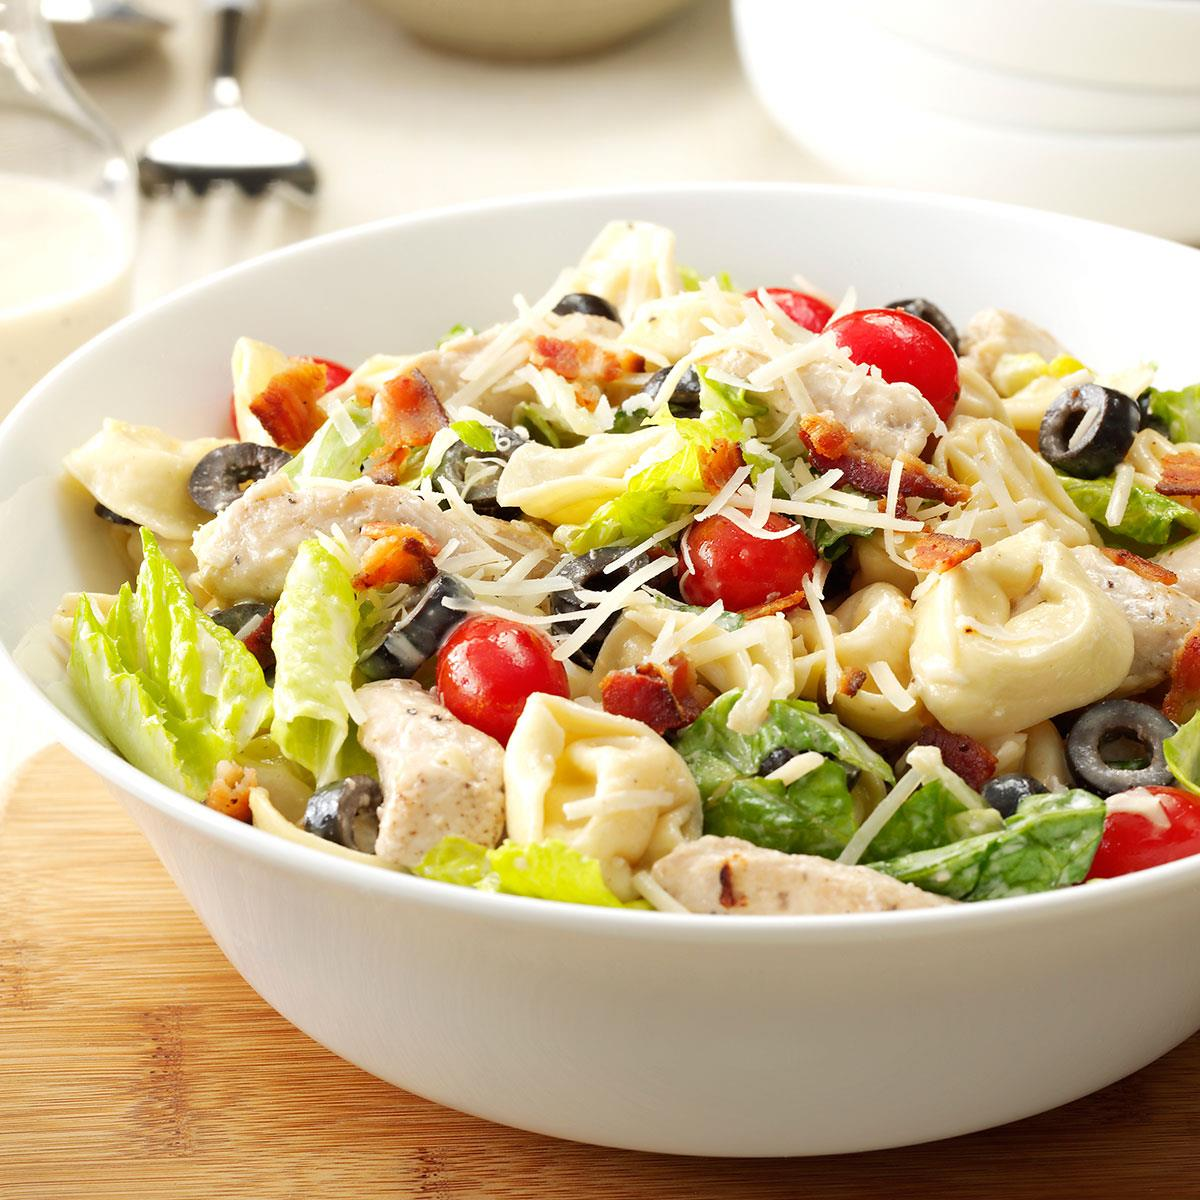 Caesar salad with chicken at home, a simple classic recipe with crackers 74